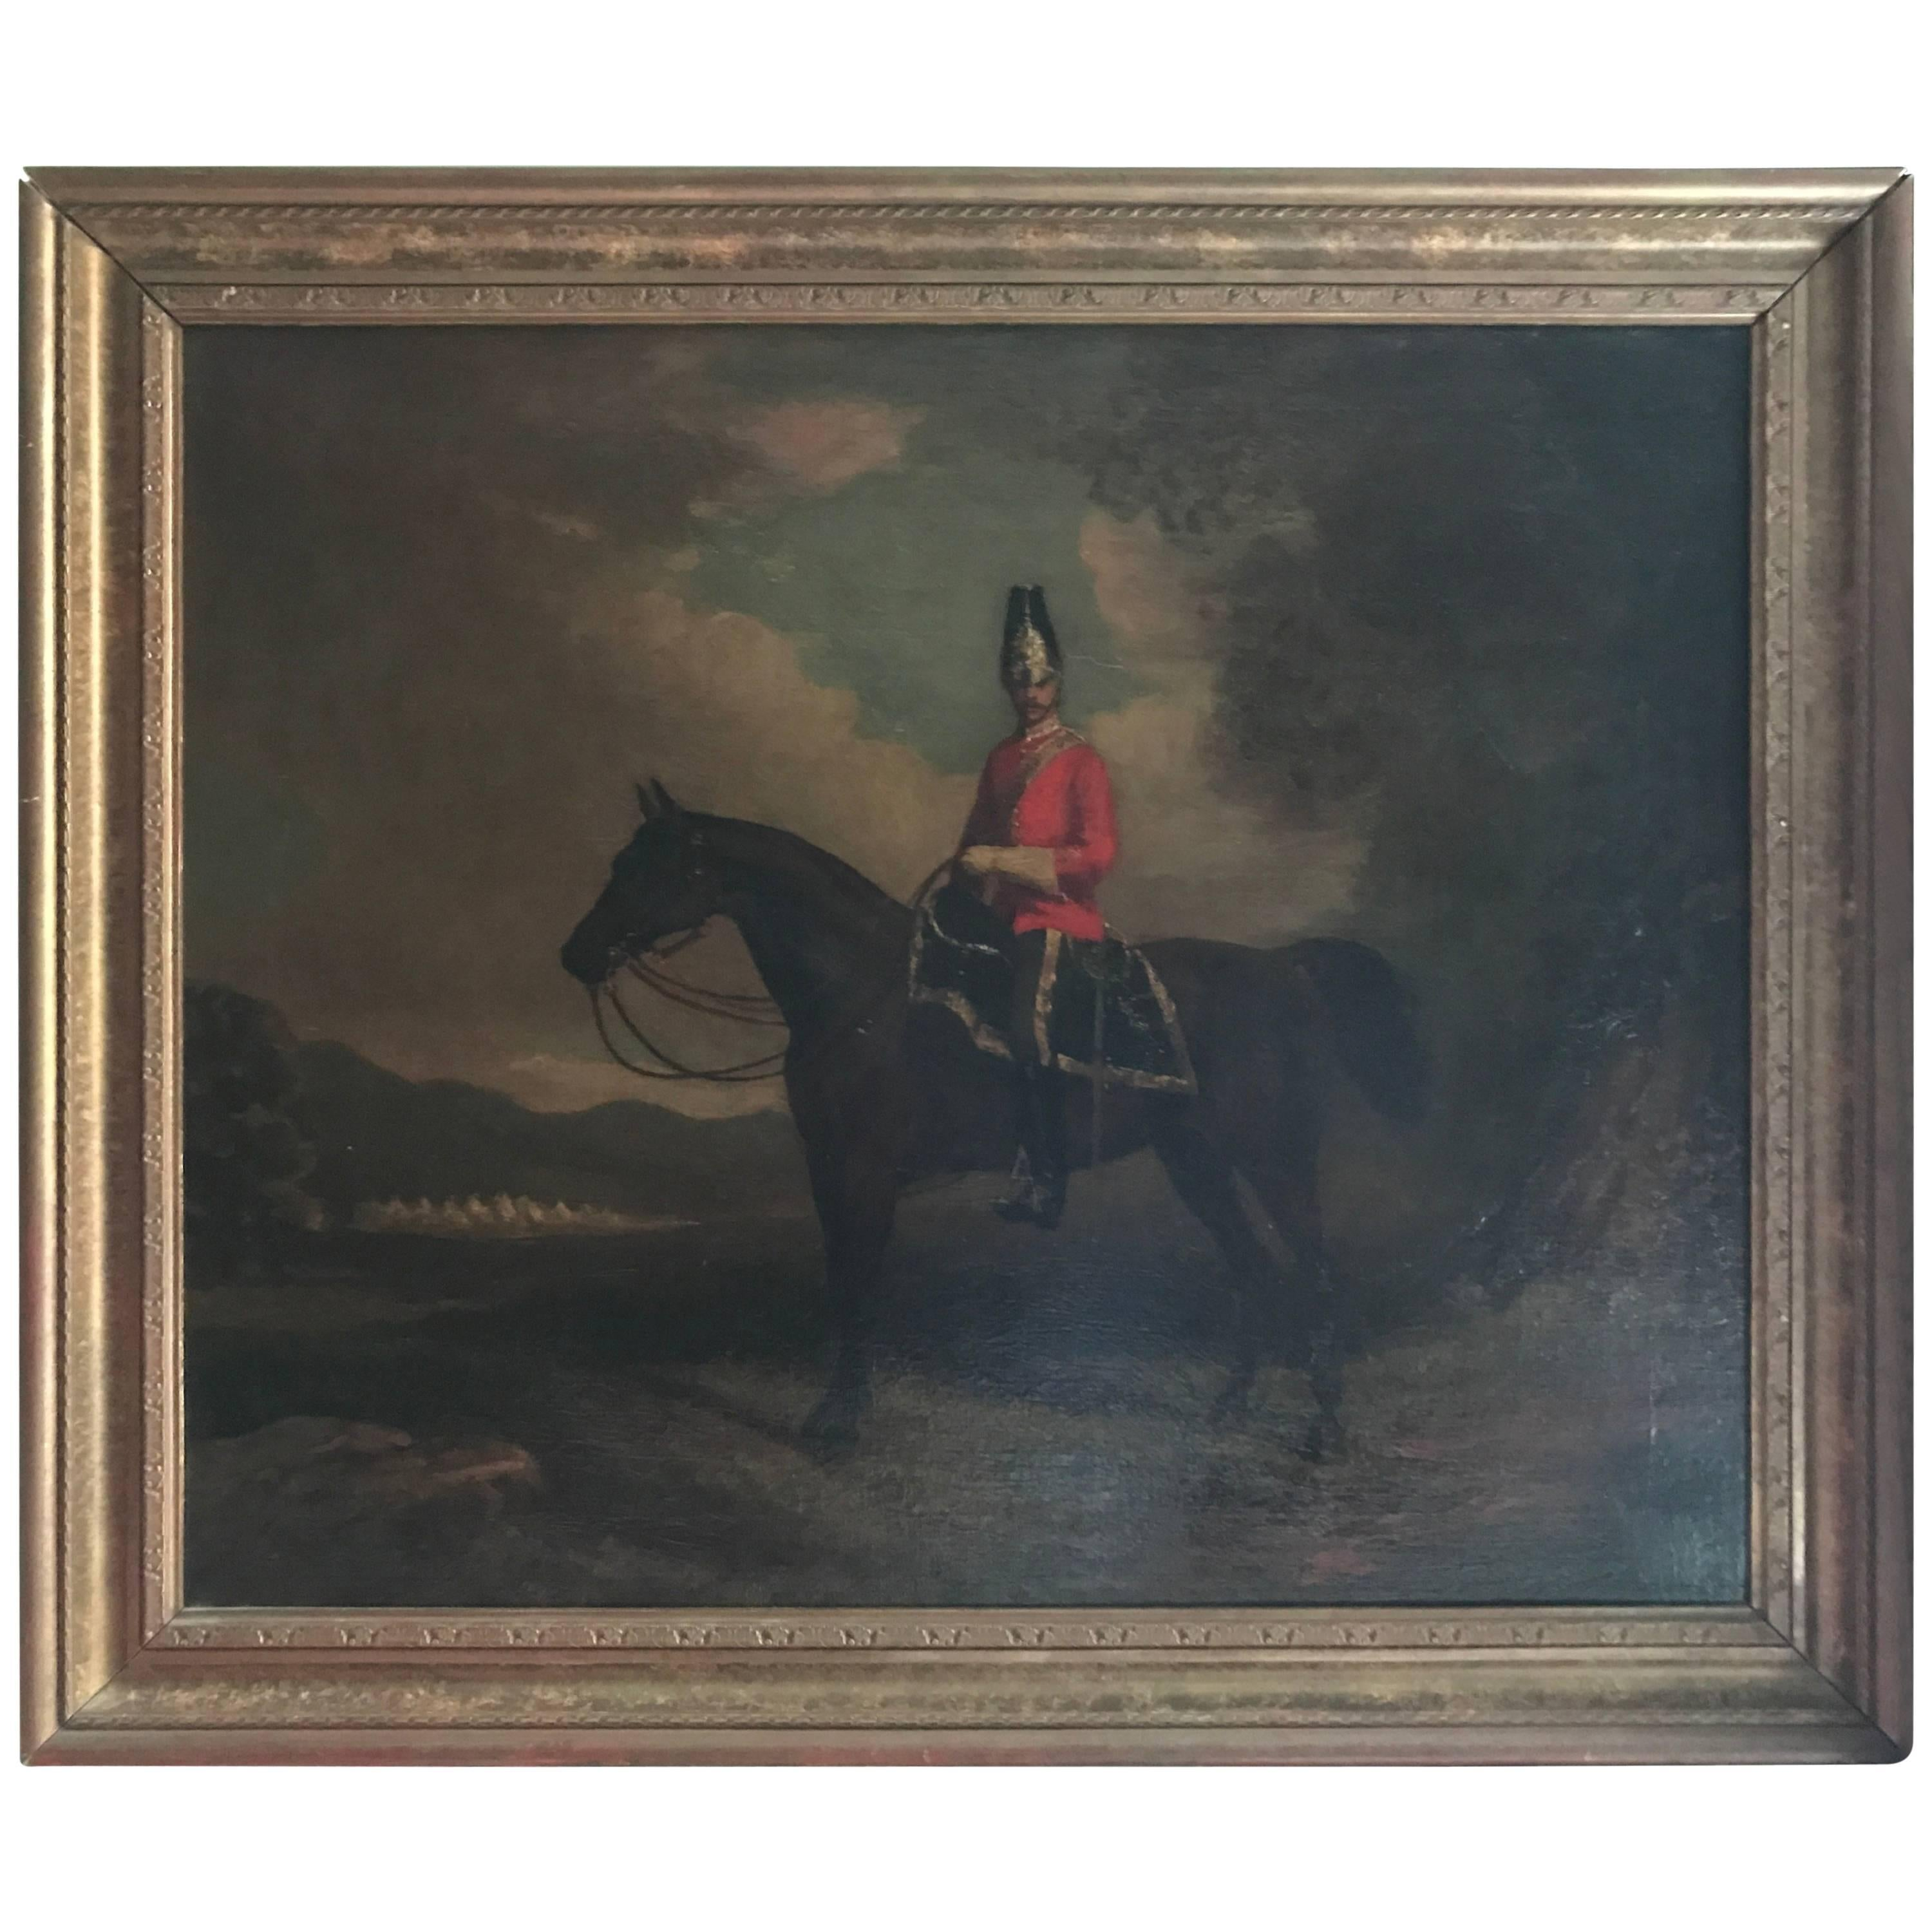 British school antique equestrian oil painting of horse hunt scene british school antique equestrian oil painting of horse hunt scene 19th century at 1stdibs jeuxipadfo Gallery